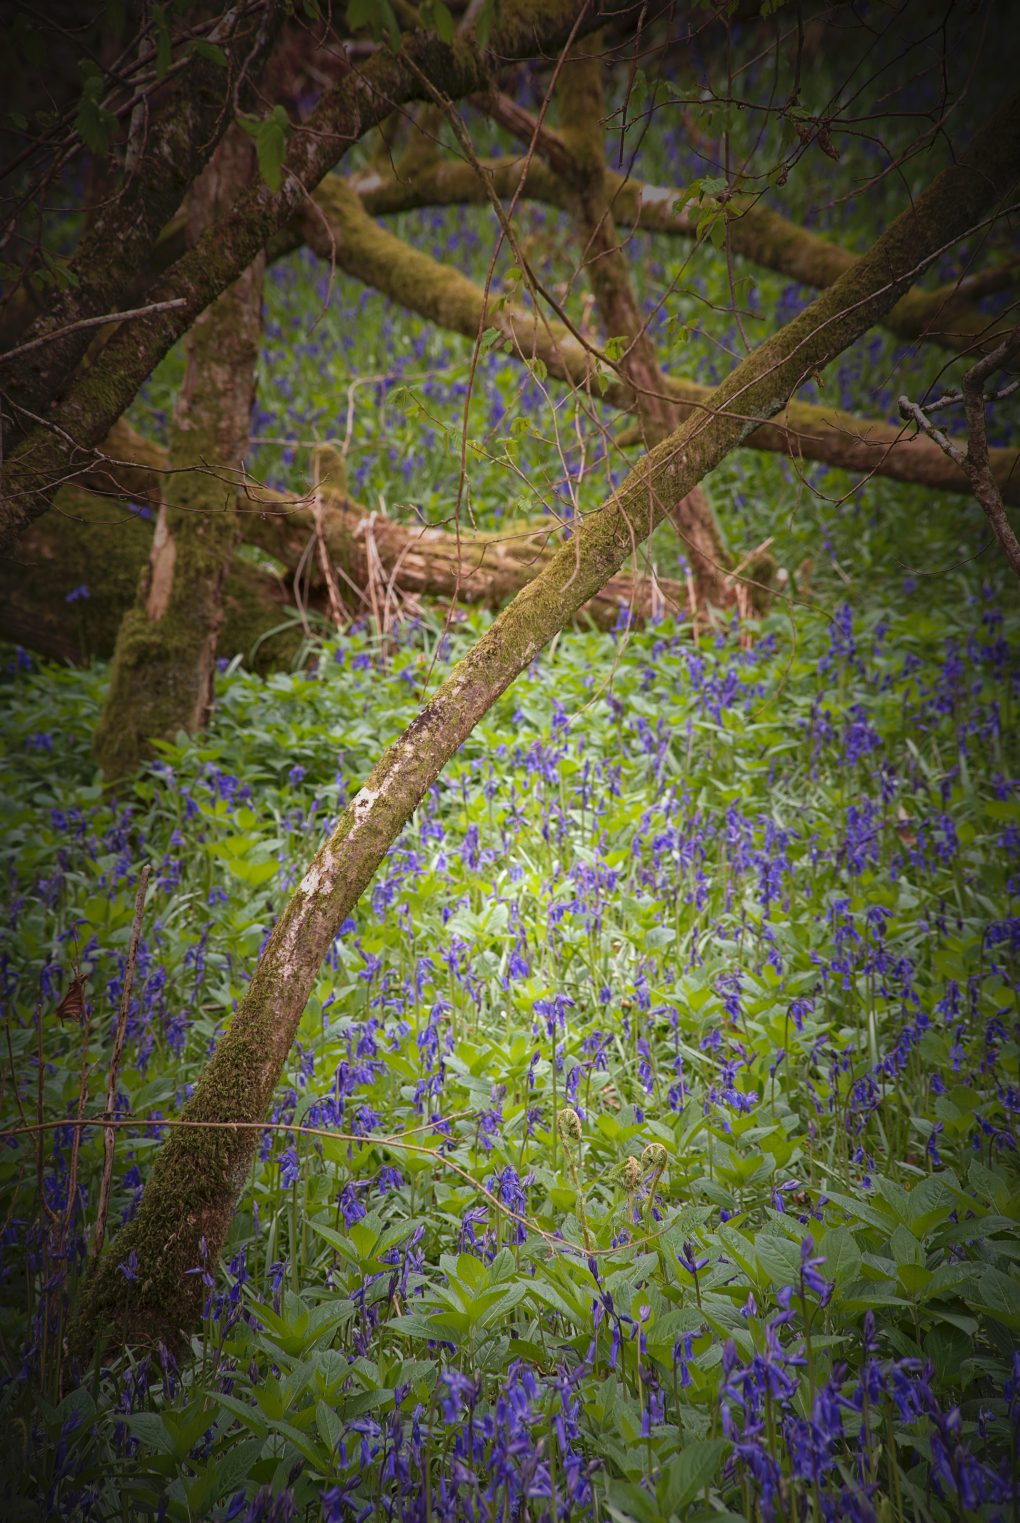 A few early bluebells from the end of April along Lady Mary's Walk, Crieff